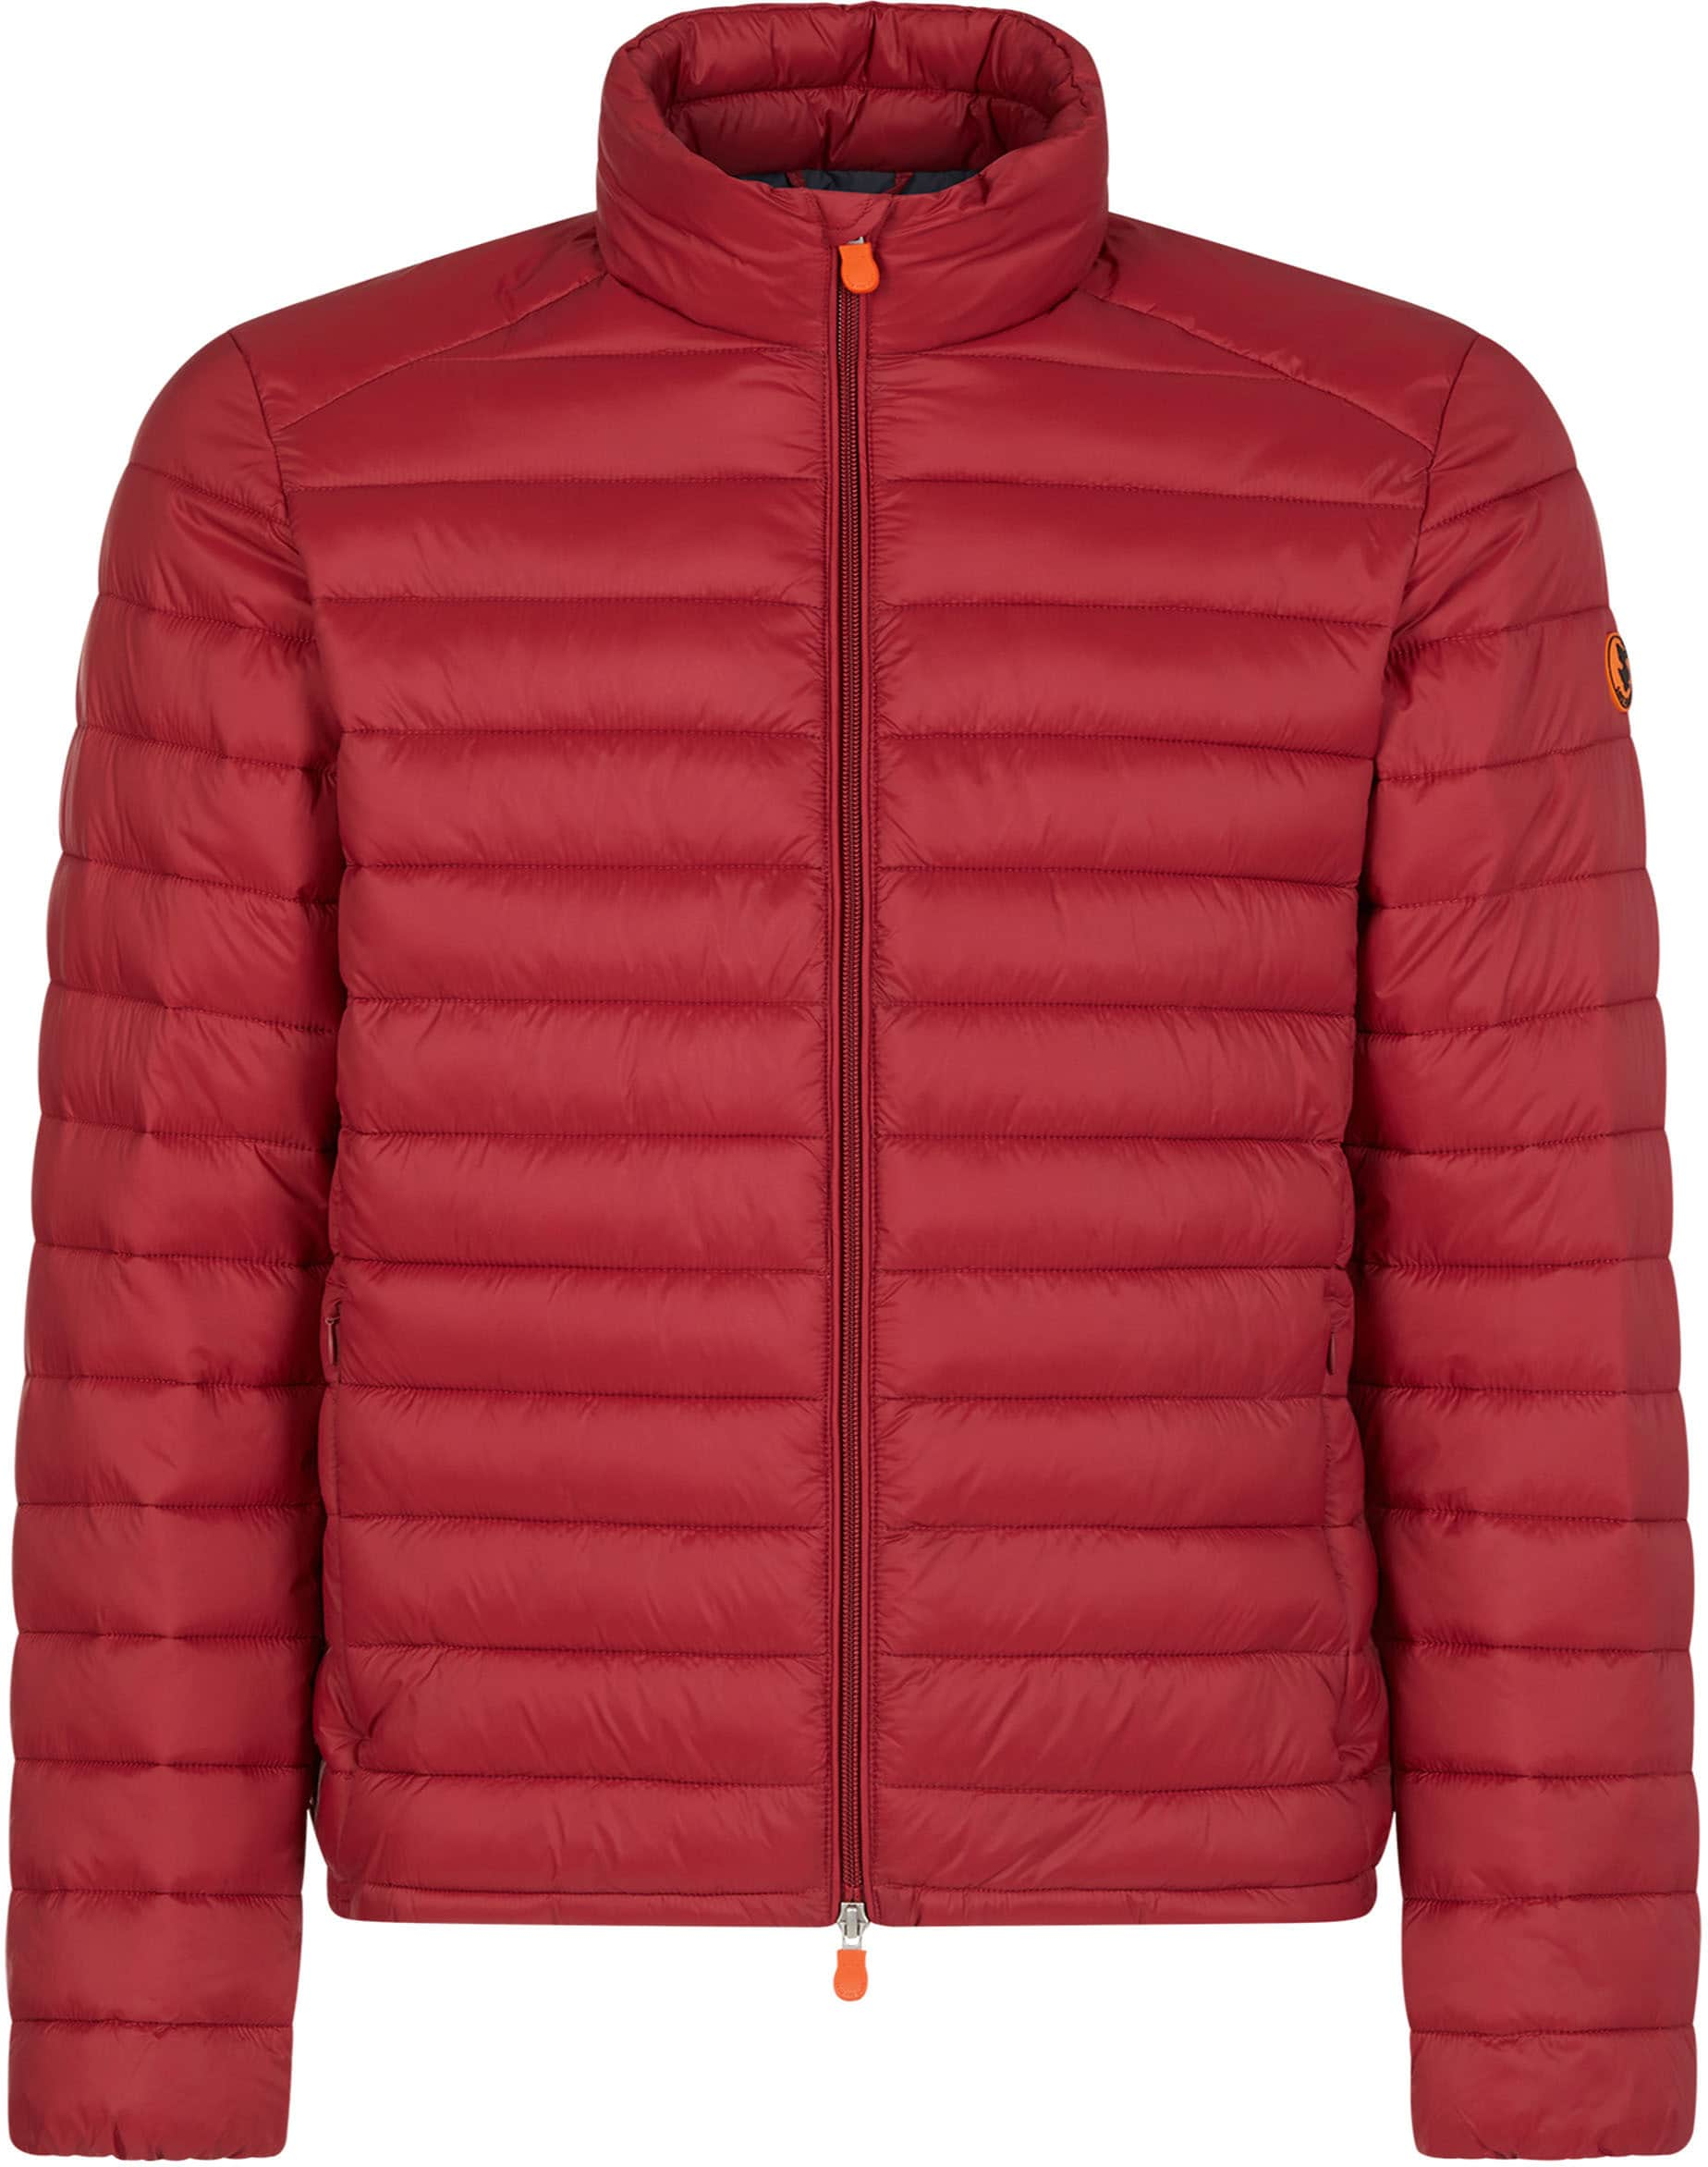 Save The Duck Jacke Mineral Bordeaux foto 0